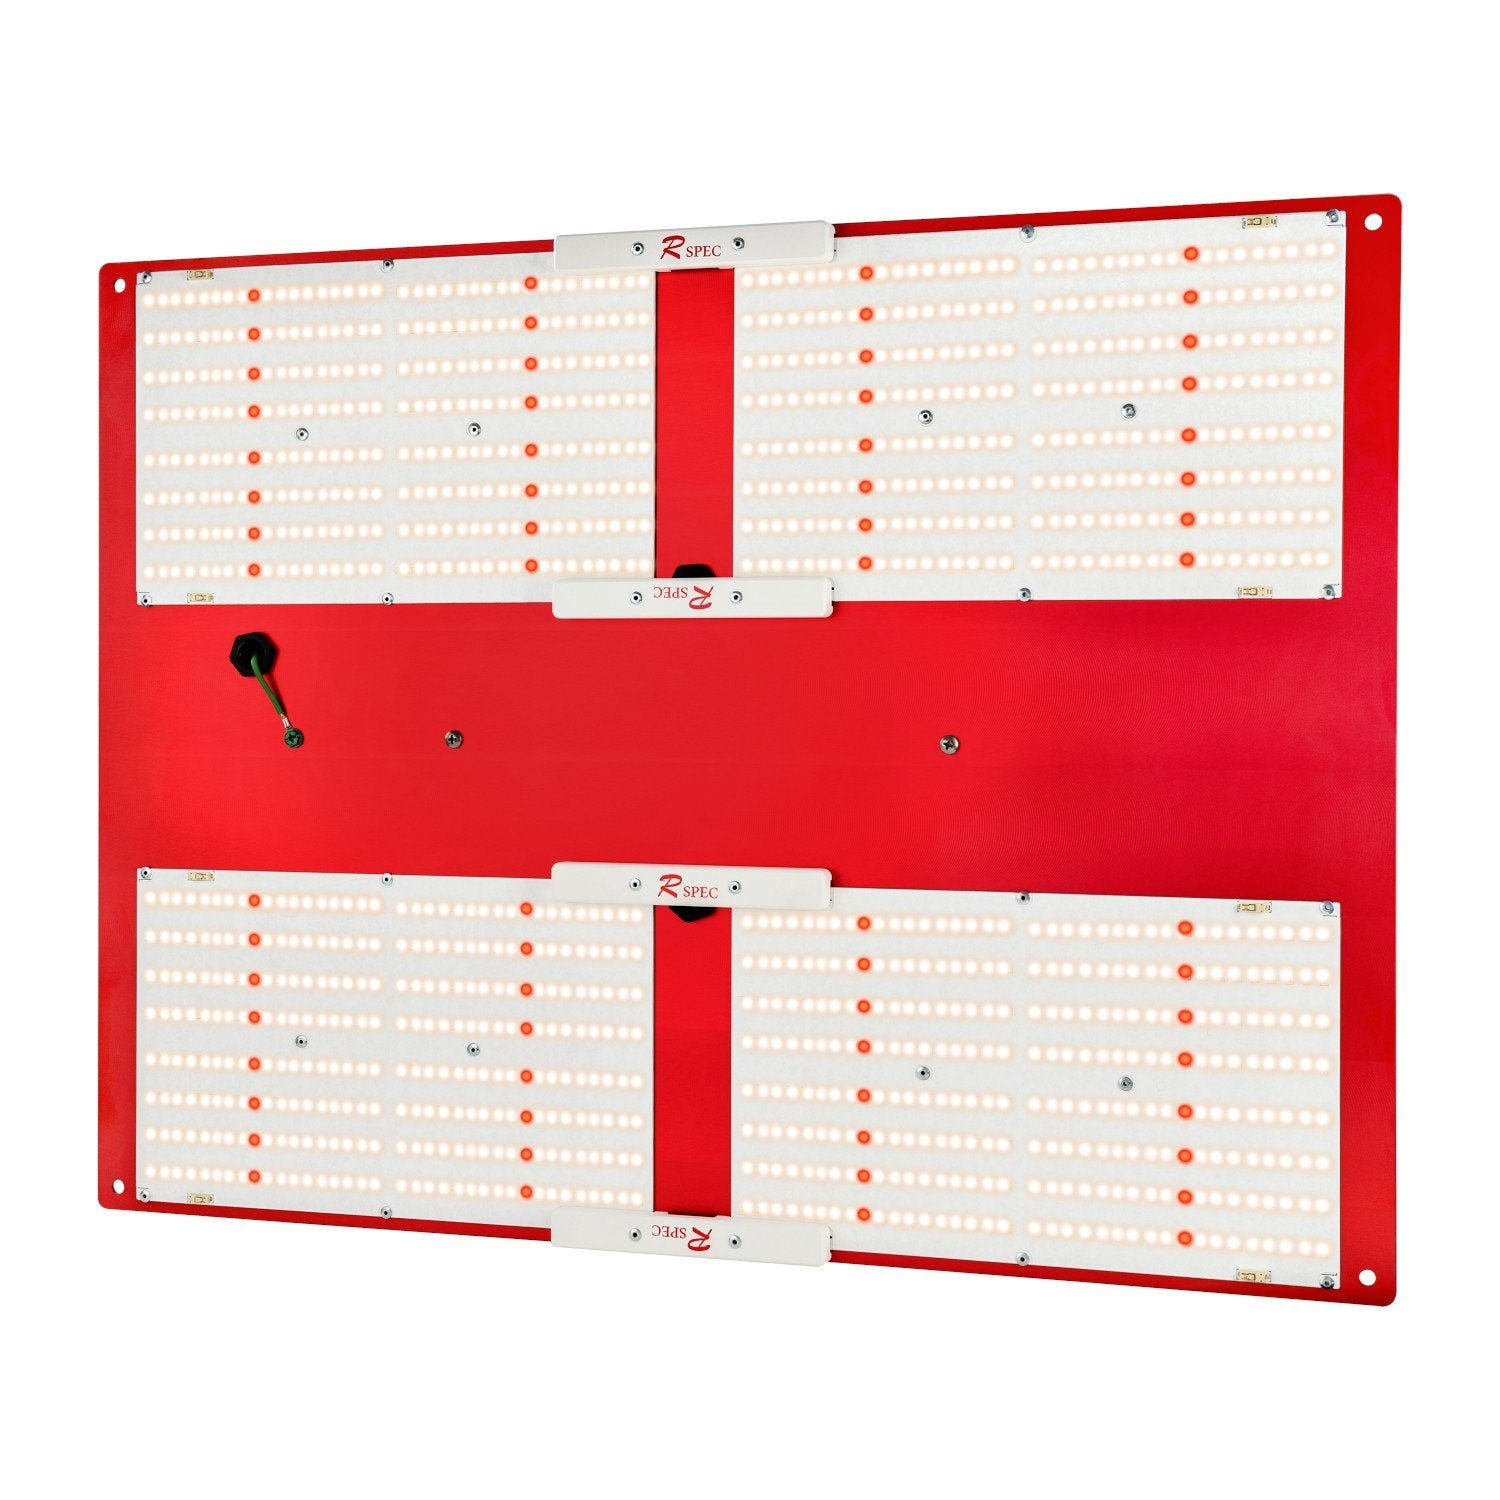 Horticulture Lighting Group HLG550 V2 R spec - 500W LED Grow Light - 120V w/ LED Glasses Horticulture Lighting Group 500W 4 Quantum Boards HLG 550 V2 - High Efficiency - R spec Horticulture Lighting Group's HLG550 V2 indoor horticulture LED LampOur HLG550 V2 Rspec Commercial Indoor Horticulture LED grow light is designed to replace a single-ended 1000watt HID. Each HLG-550 V2 uses 4 of our custom designed full-spectrum high-efficiency white light quantum boards with Samsung LM301B and Deep Red LED 660nm. Comes in 3500K + 660nm (Flowering and Full Cycle with red) spectrum. This unit is dimmable, with wattage output from 200 to 480 watts. R Spec - 64 White LEDs have been replaced with red LEDs Top Features High efficiency white light Quantum Boards White Light Full Spectrum for better results Reliable passive cooled design Better canopy light penetration with diffused light Ideal for veg and bloom Dimmable Power Supply included 3 Year Warranty Specifications: Power250-500 Watts Voltage Range90-277 VAC LED1152 pcs Samsung 301B - 64 Red Flowering Footprint4.5'X4.5' or 4'X5' Veg Footprint6'X6' System Efficiency171 Lm/W System PPF Efficacy 2.6-2.65 μmol/joule Total output1178.05 PPF Dimensions26 X20 x3  Recommended Mounting Height 22-32 inches